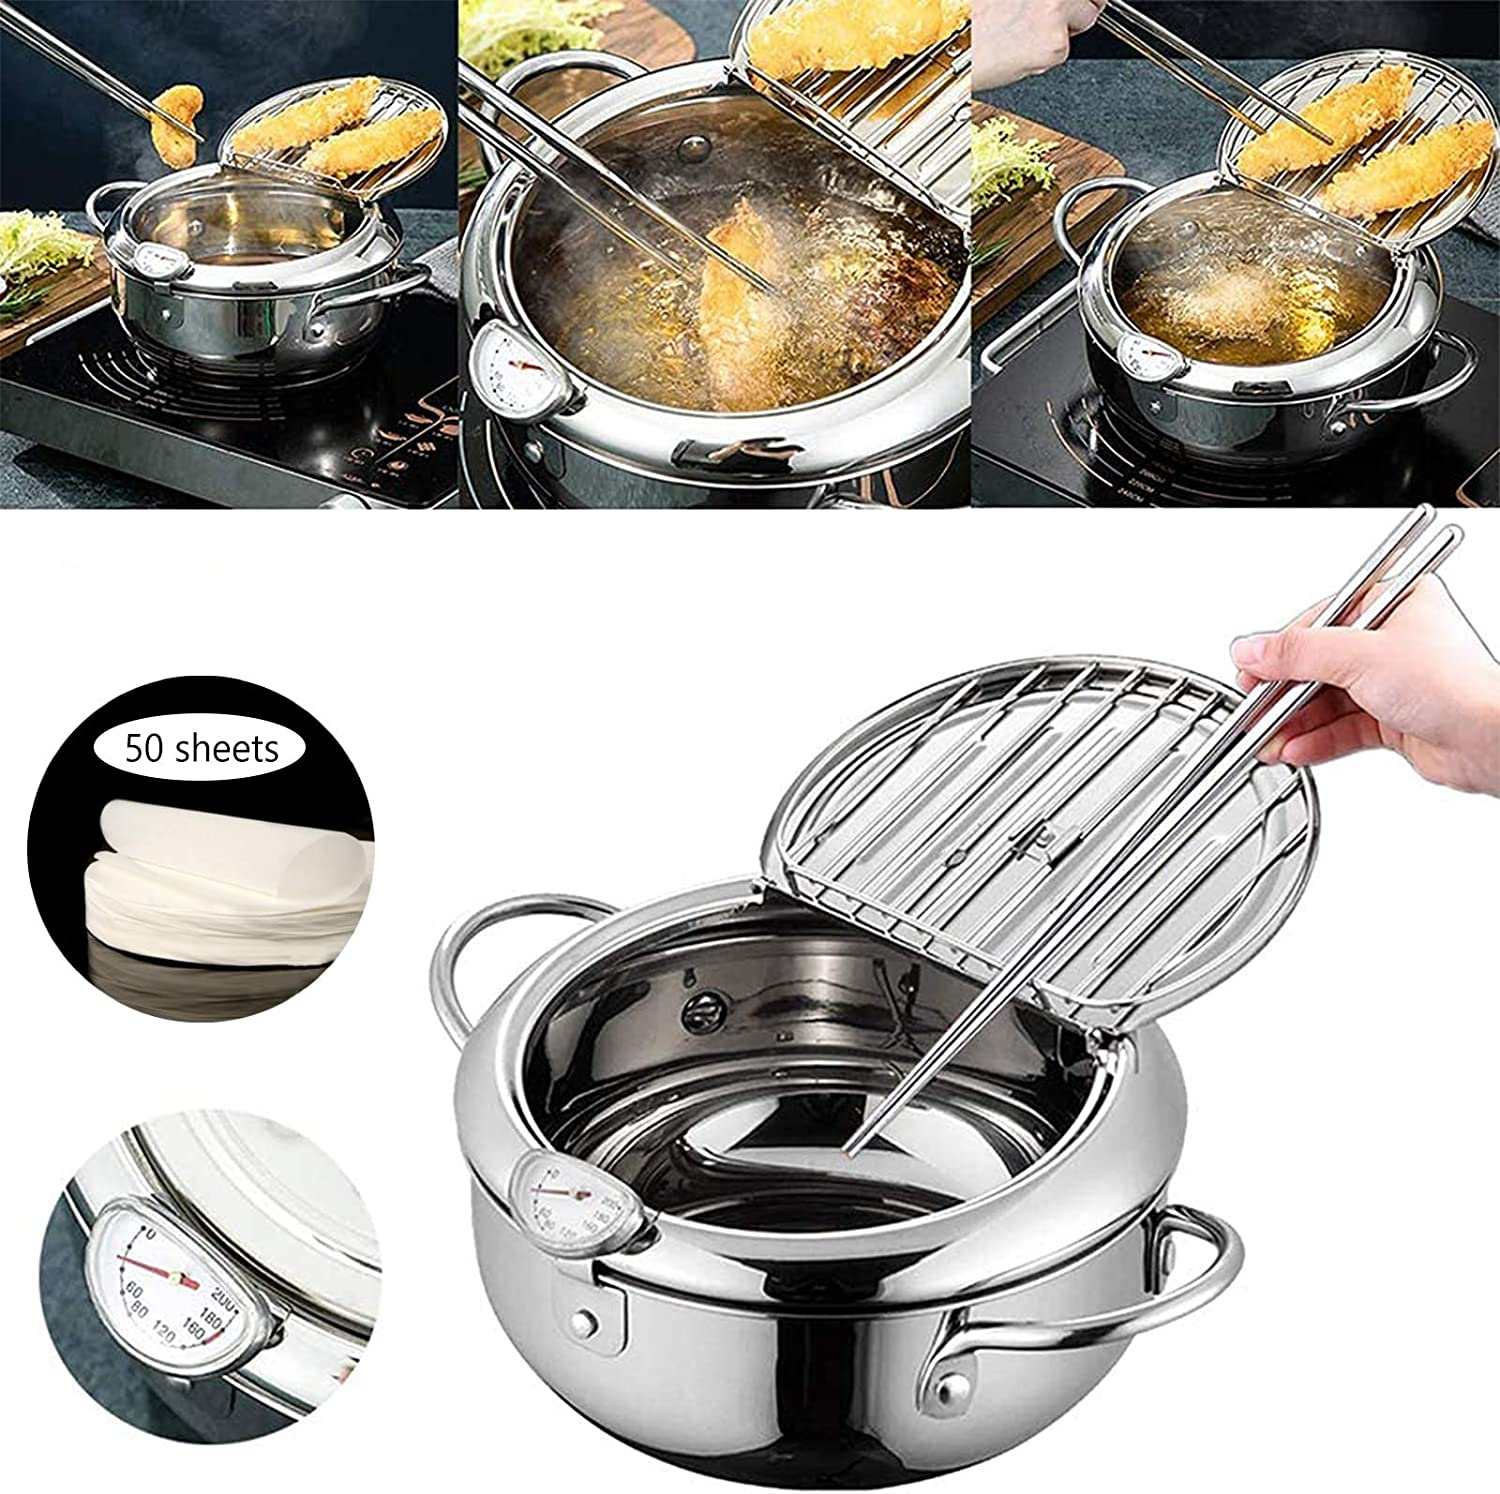 Tempura Fryer Pot with Thermometer Stainless Steel Japanese-style Frying pan with Oil Drip Rack Lid Tempura Pan for Kitchen Cooking 2200ML